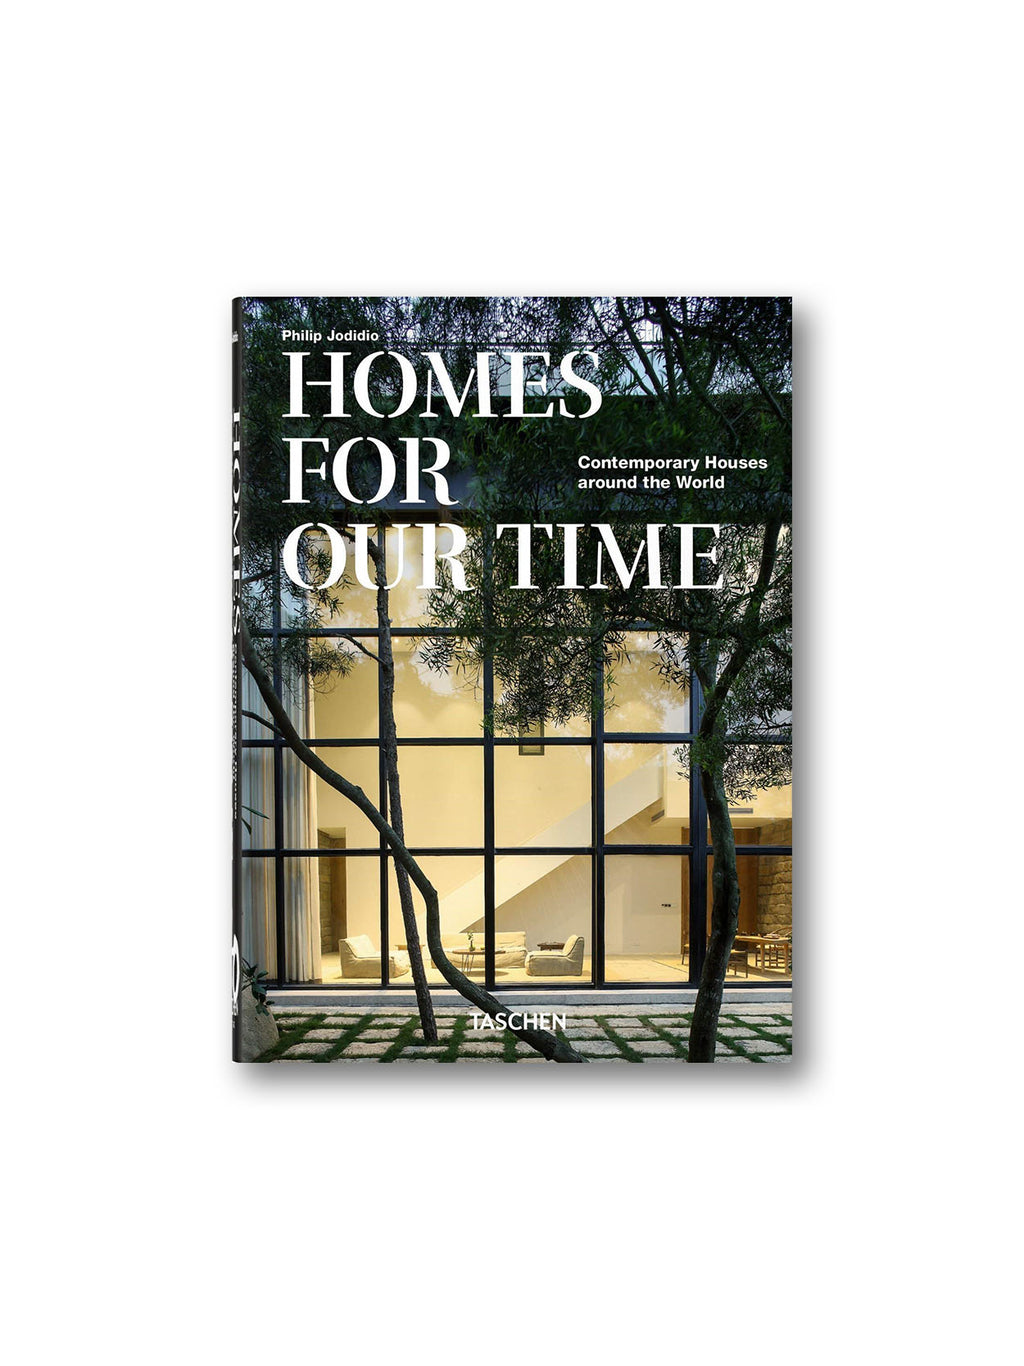 Homes For Our Time - Contemporary Houses around the World - 40th Anniversary Edition